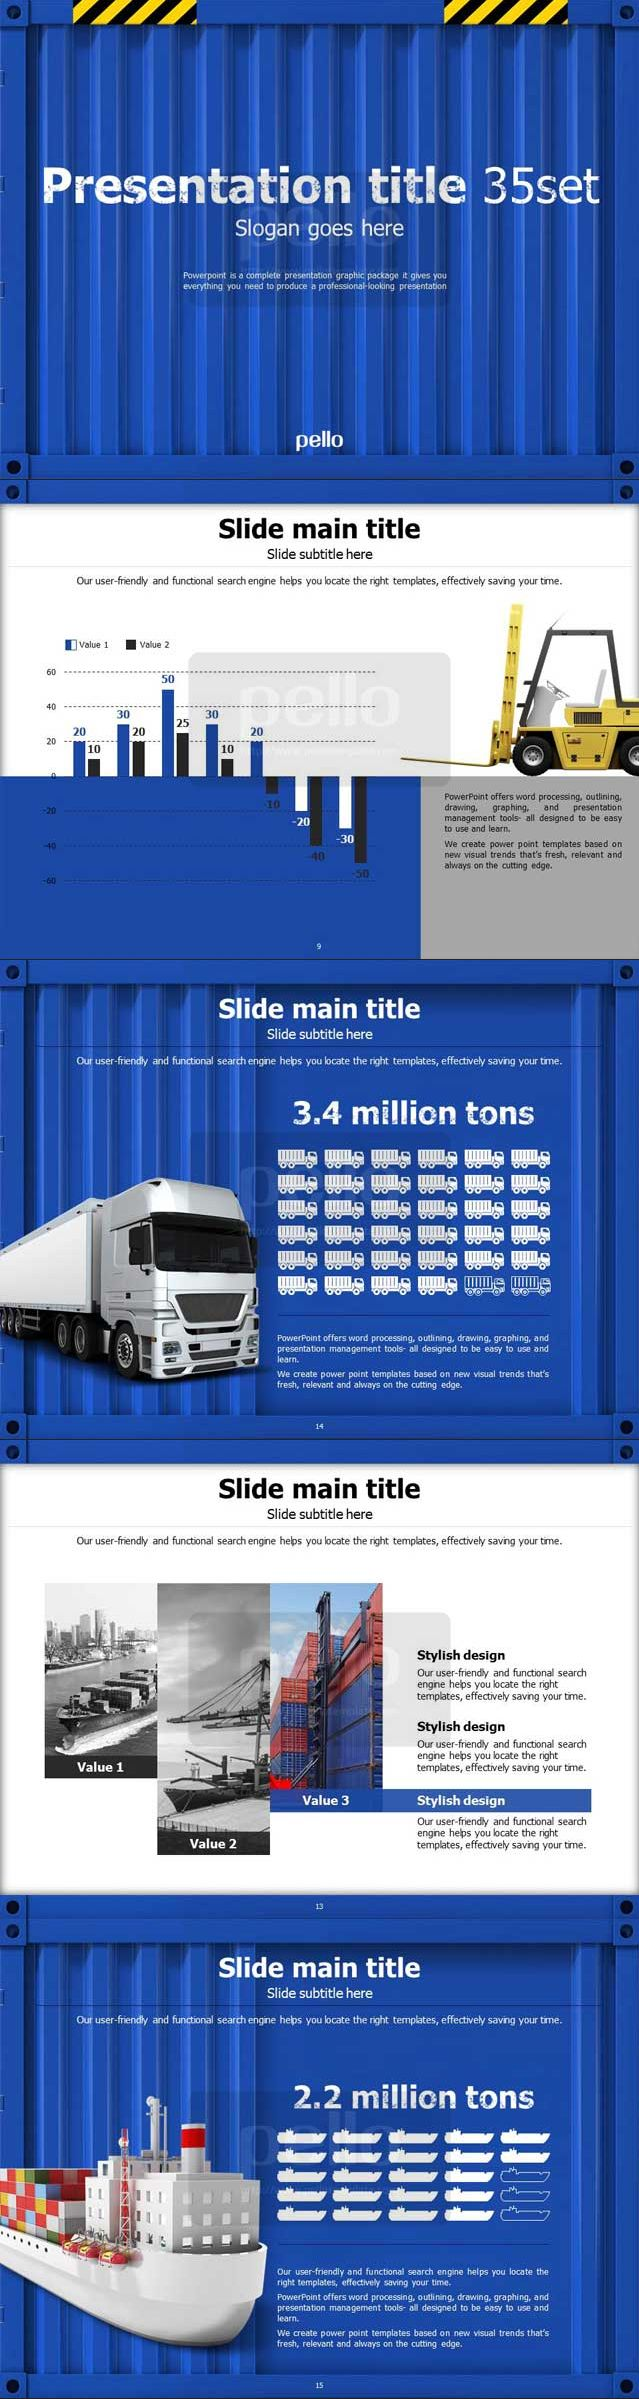 85 best good pello ppt templates images on pinterest templates showcase your transport export import logistics and shipping business data in this clean and striking full hd powerpoint template by pello toneelgroepblik Gallery